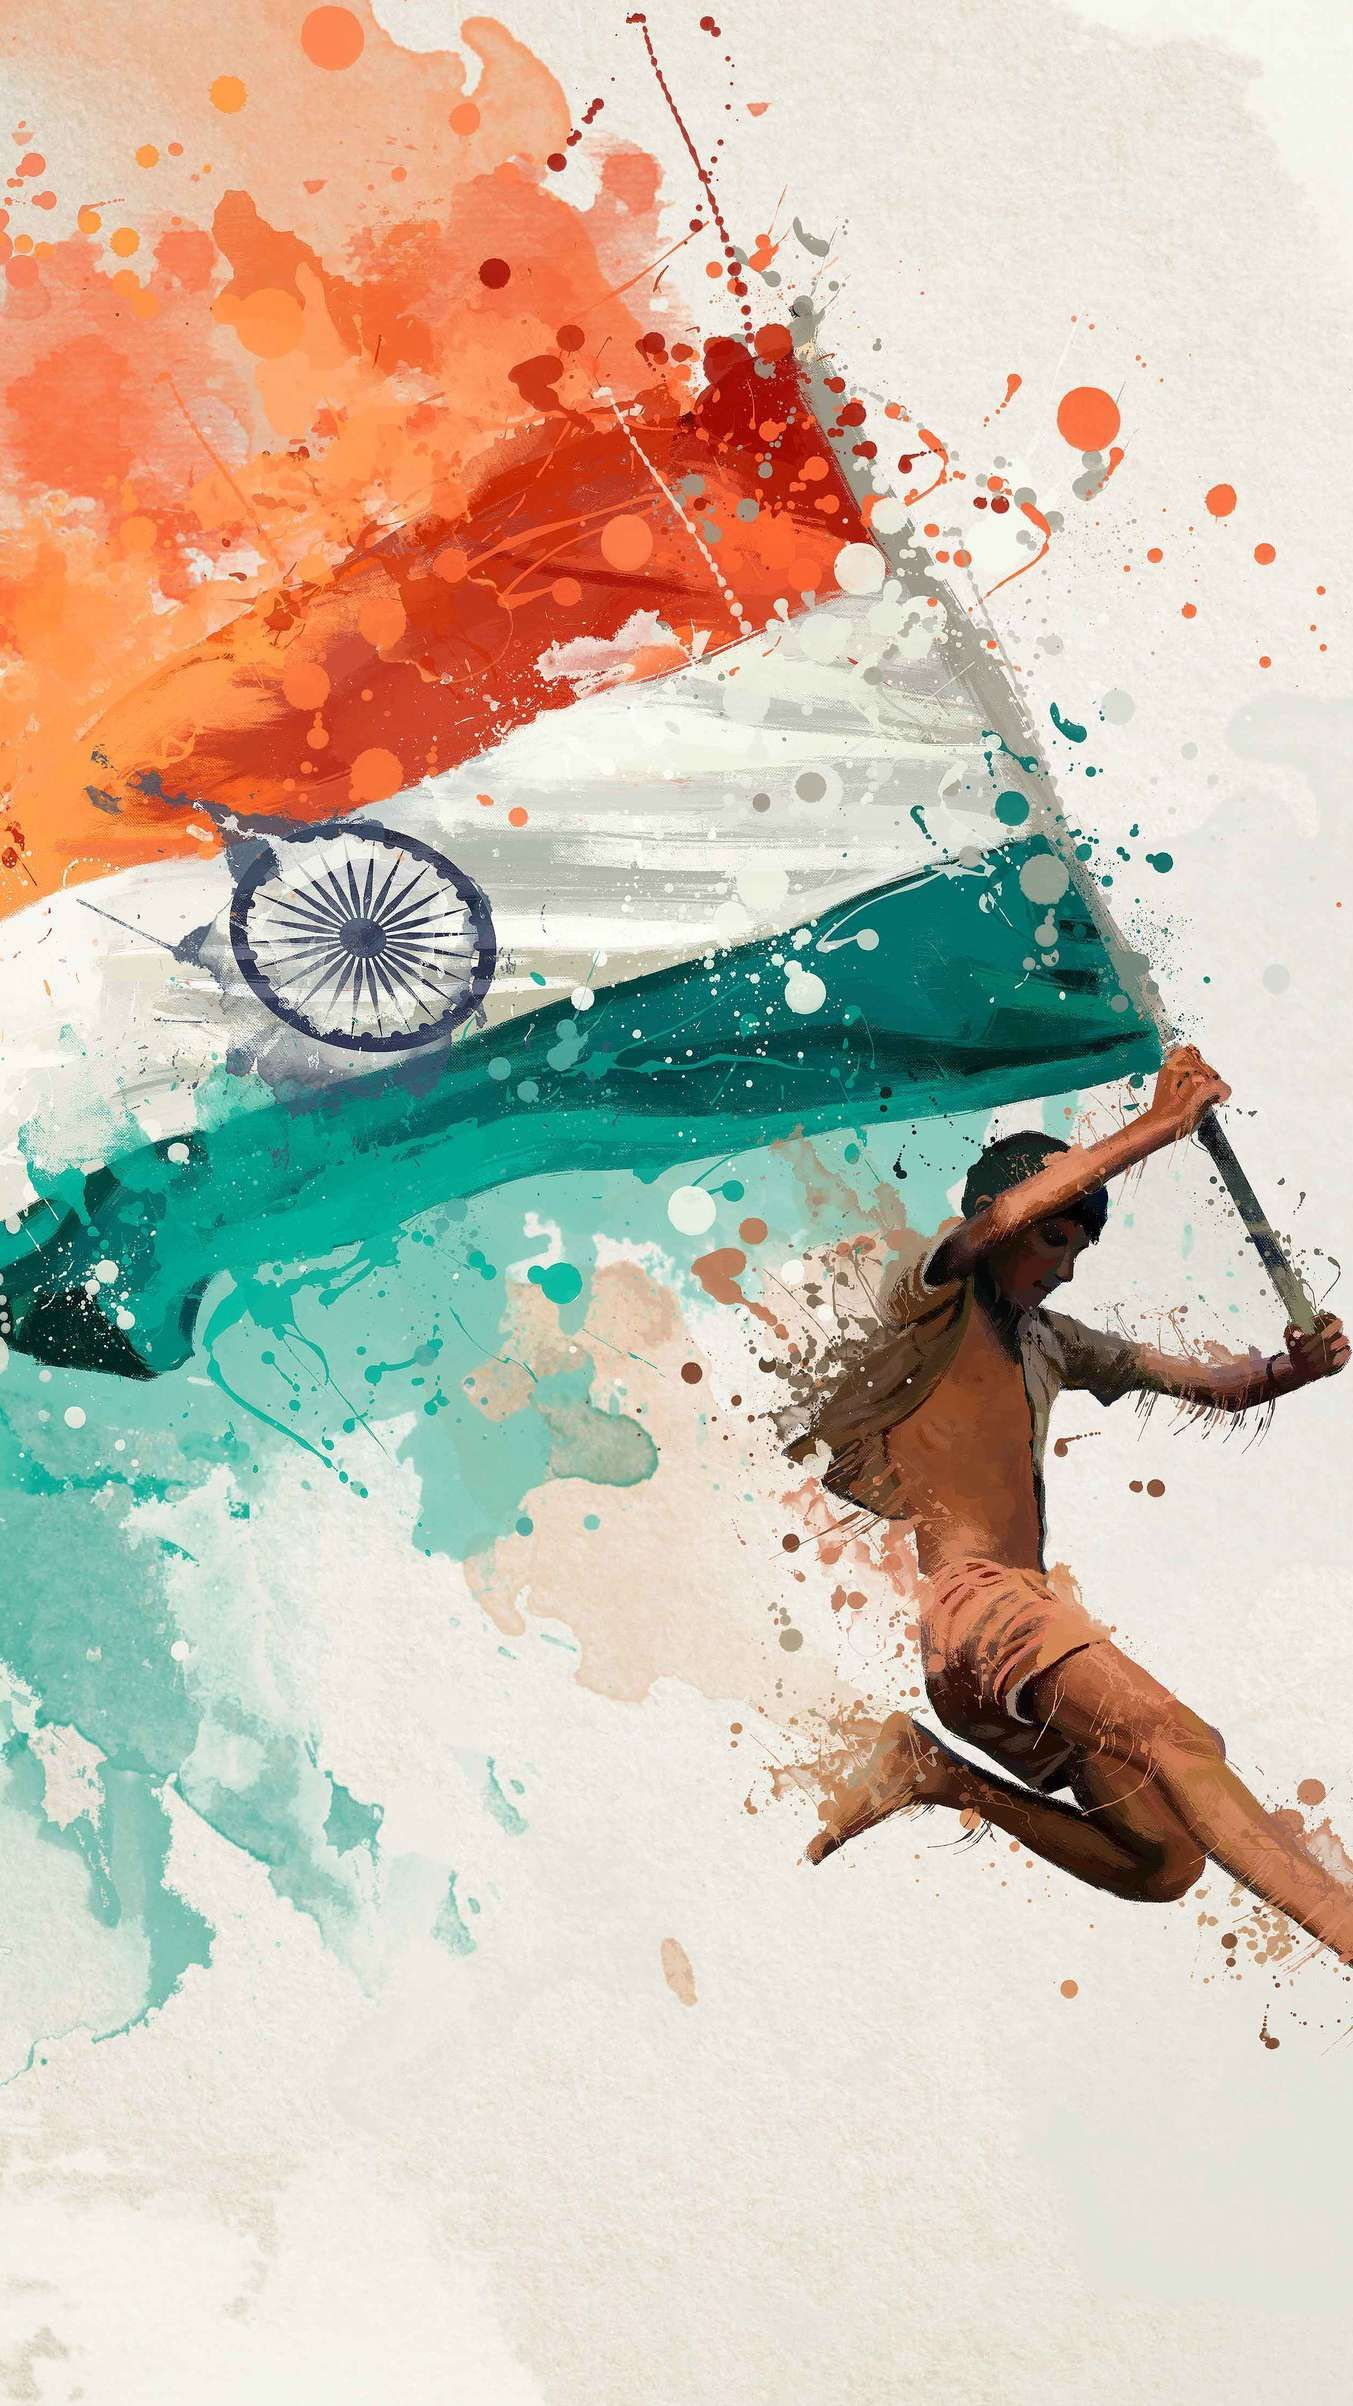 Independence Day Indian Flag Iphone Wallpaper Indian Flag Wallpaper India Flag Indian Flag Images